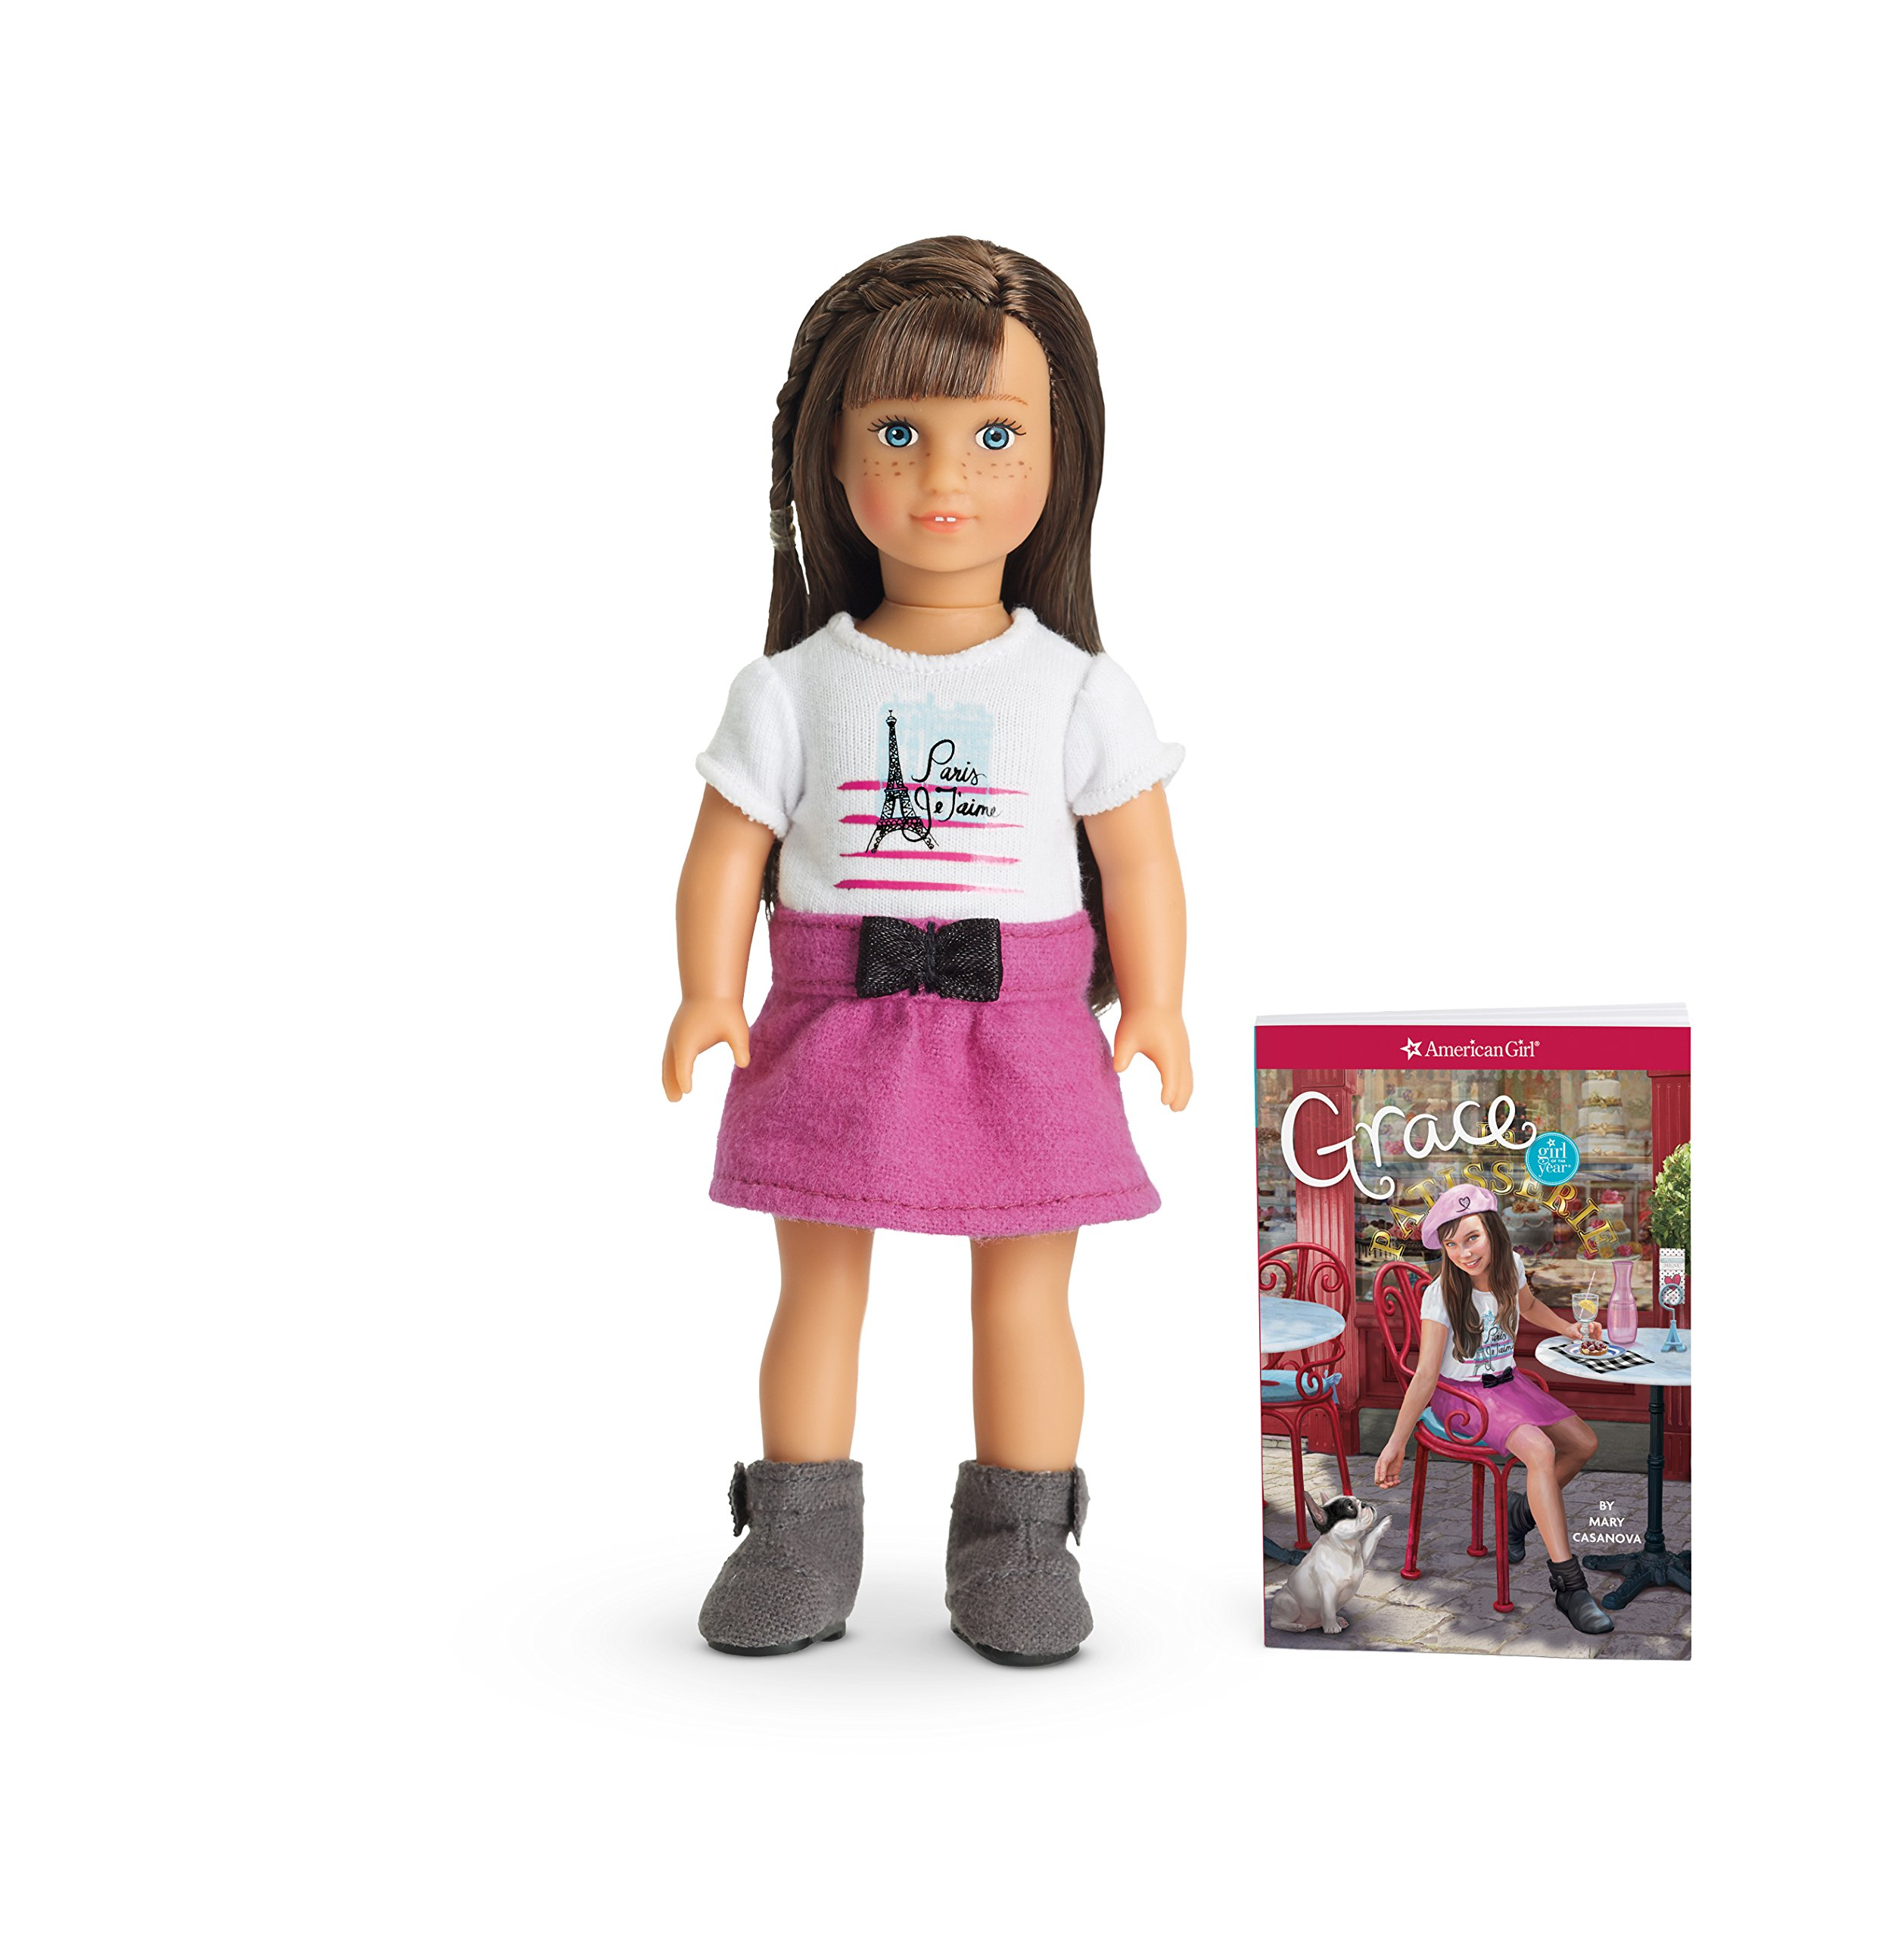 American Girl Grace: Girl of The Year 2015 Mini Doll by Amer Girl